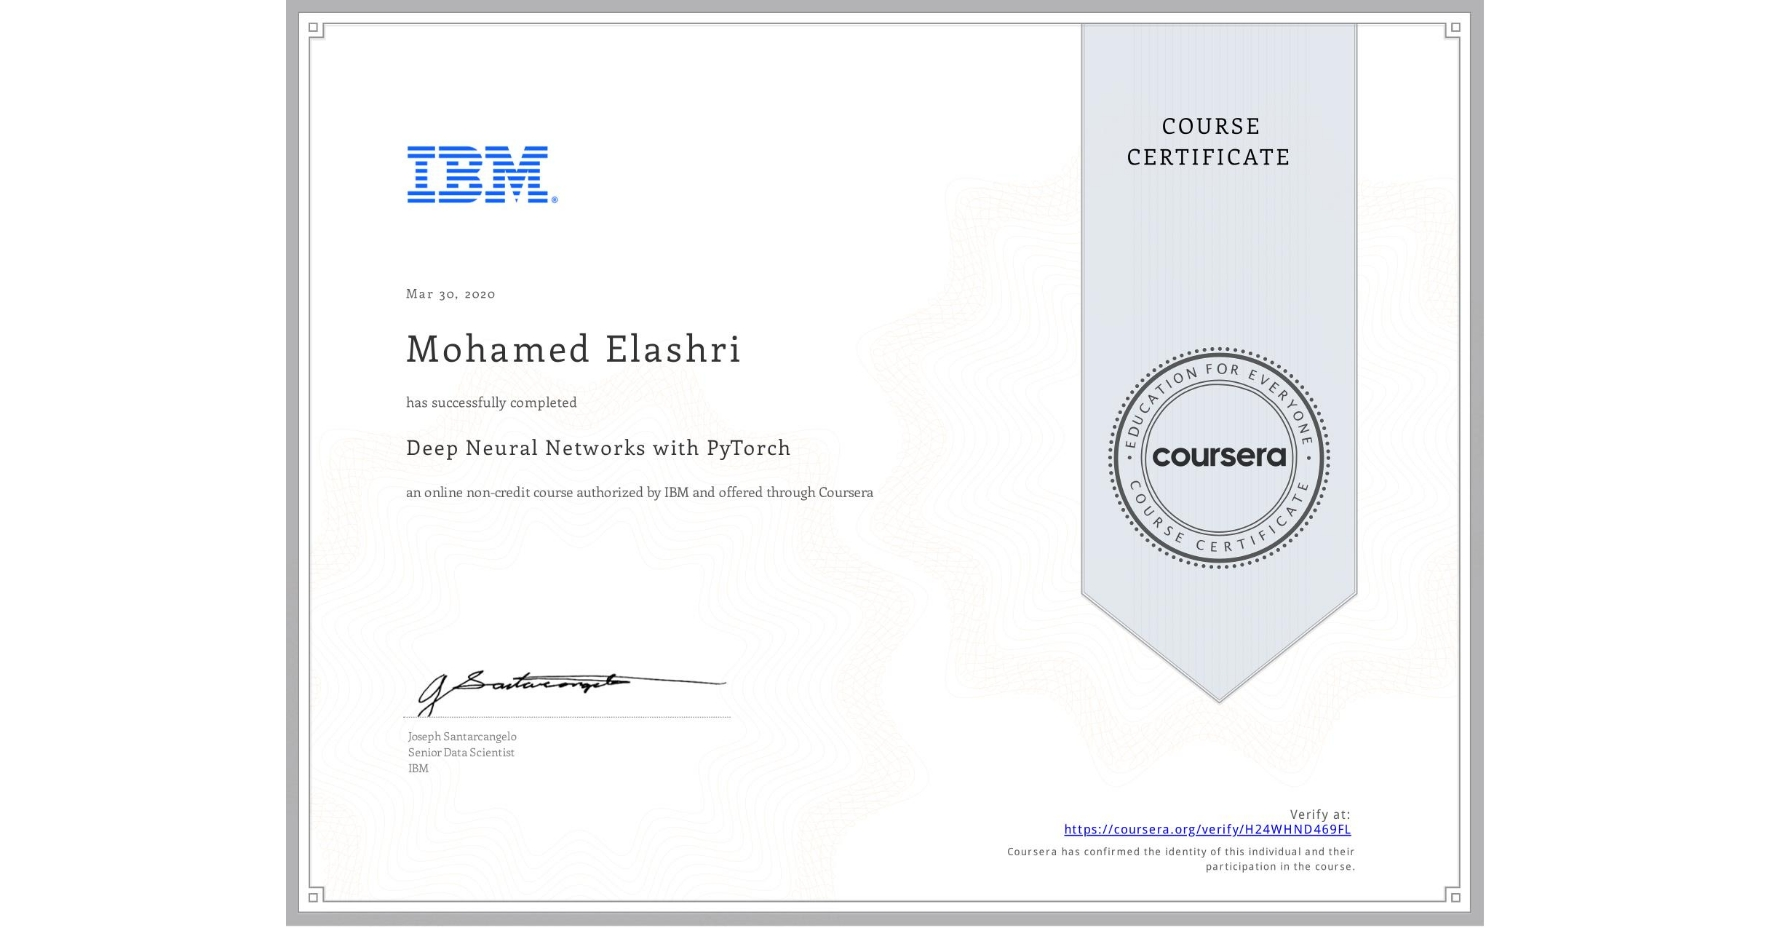 View certificate for Mohamed Elashri, Deep Neural Networks with PyTorch, an online non-credit course authorized by IBM and offered through Coursera